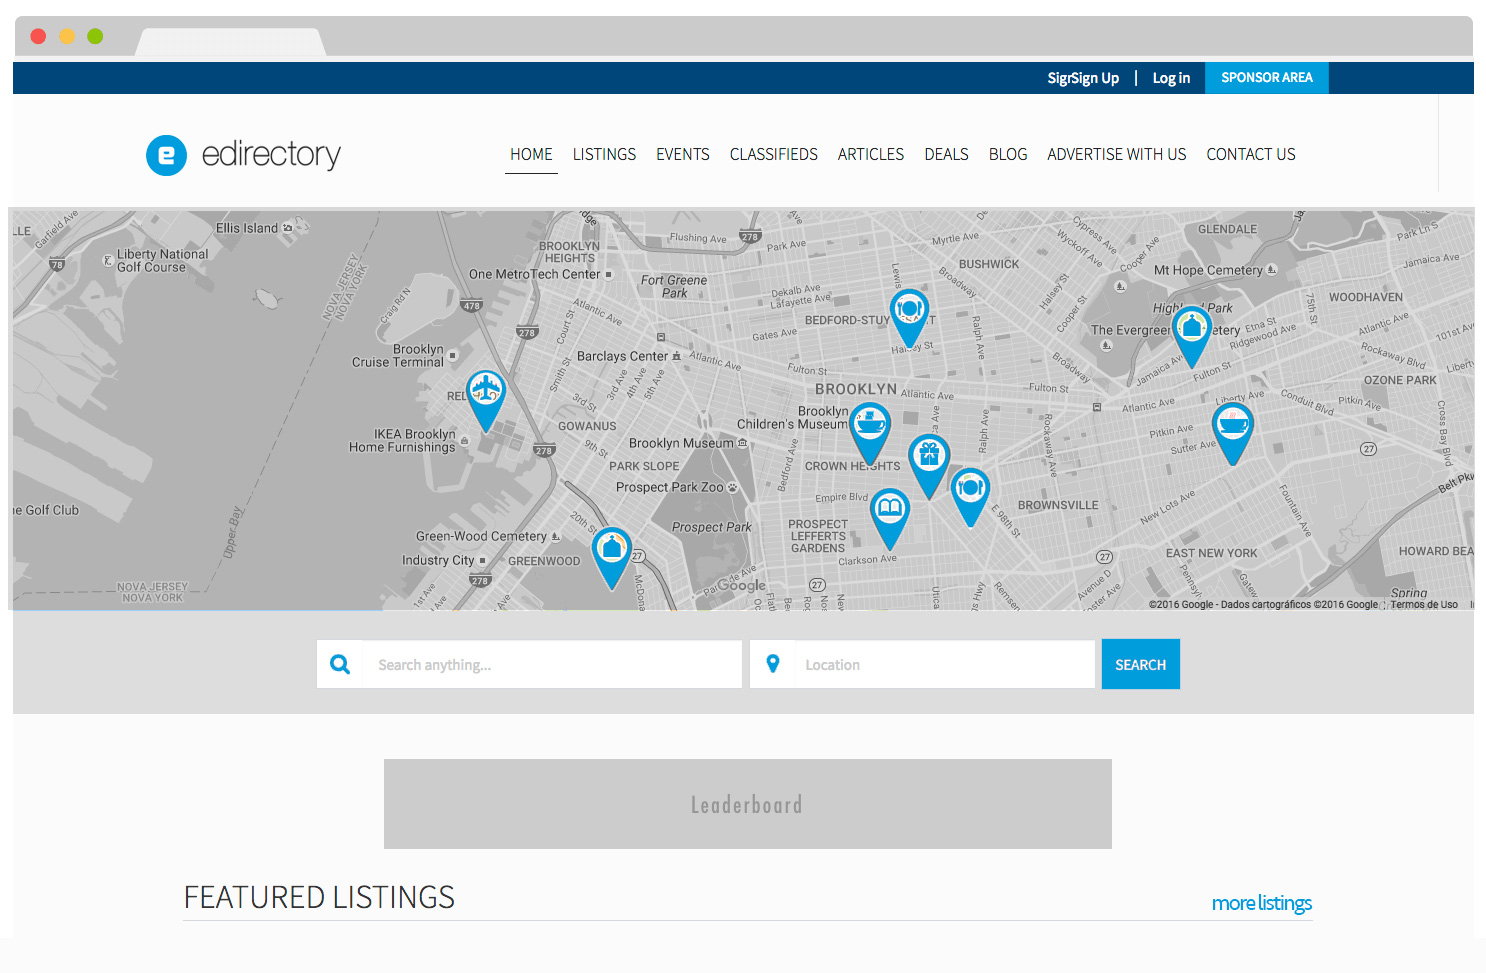 eDirectory Google Maps Placemarks